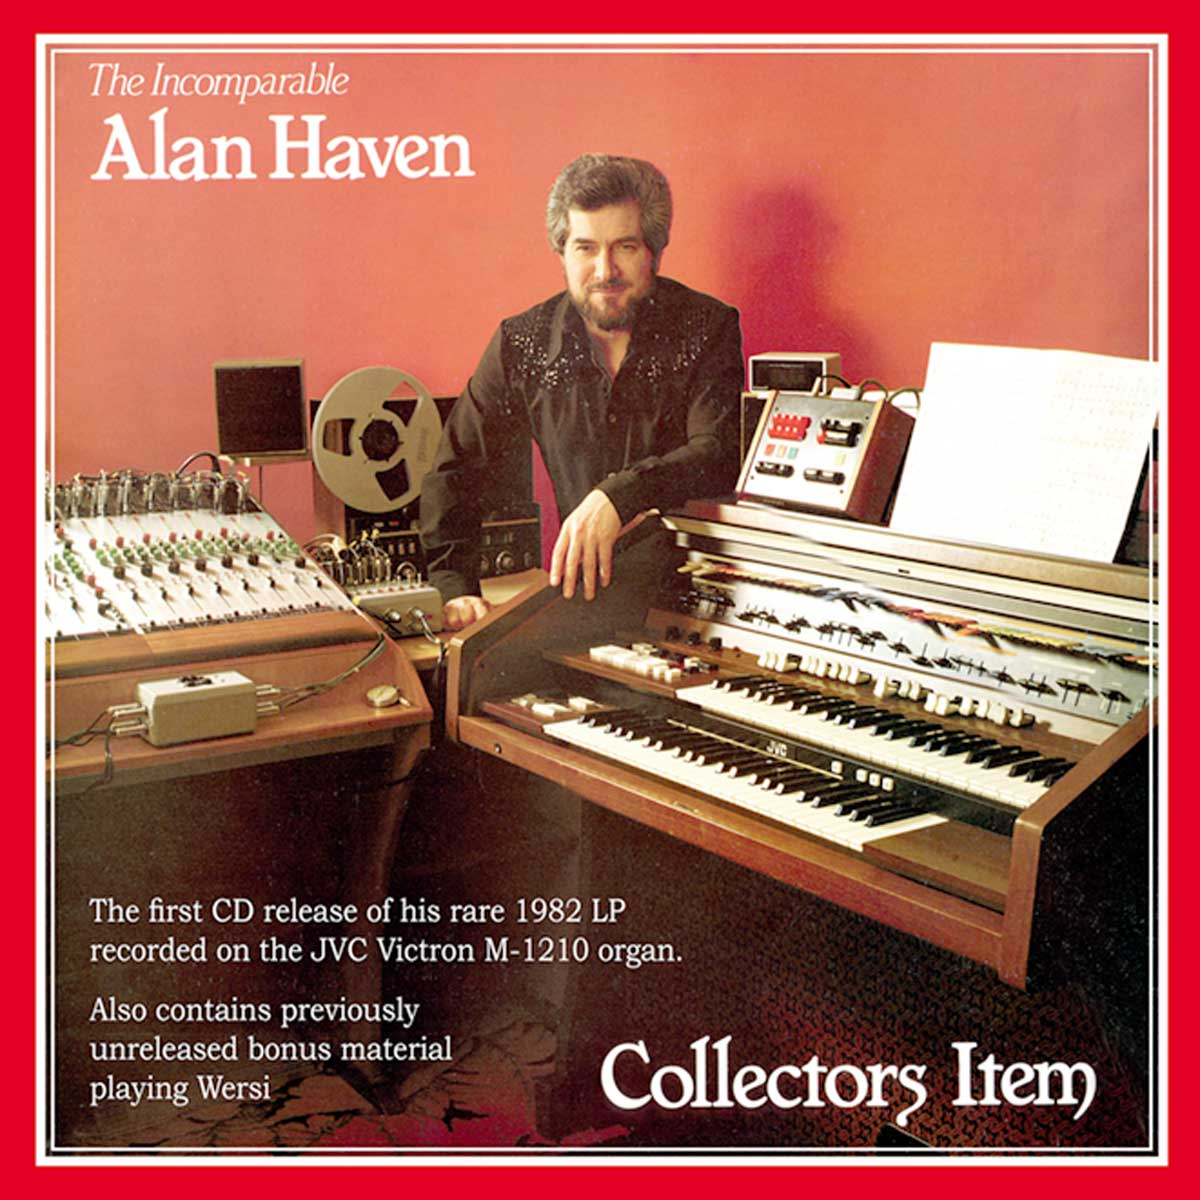 Alan Haven - Collector's Item